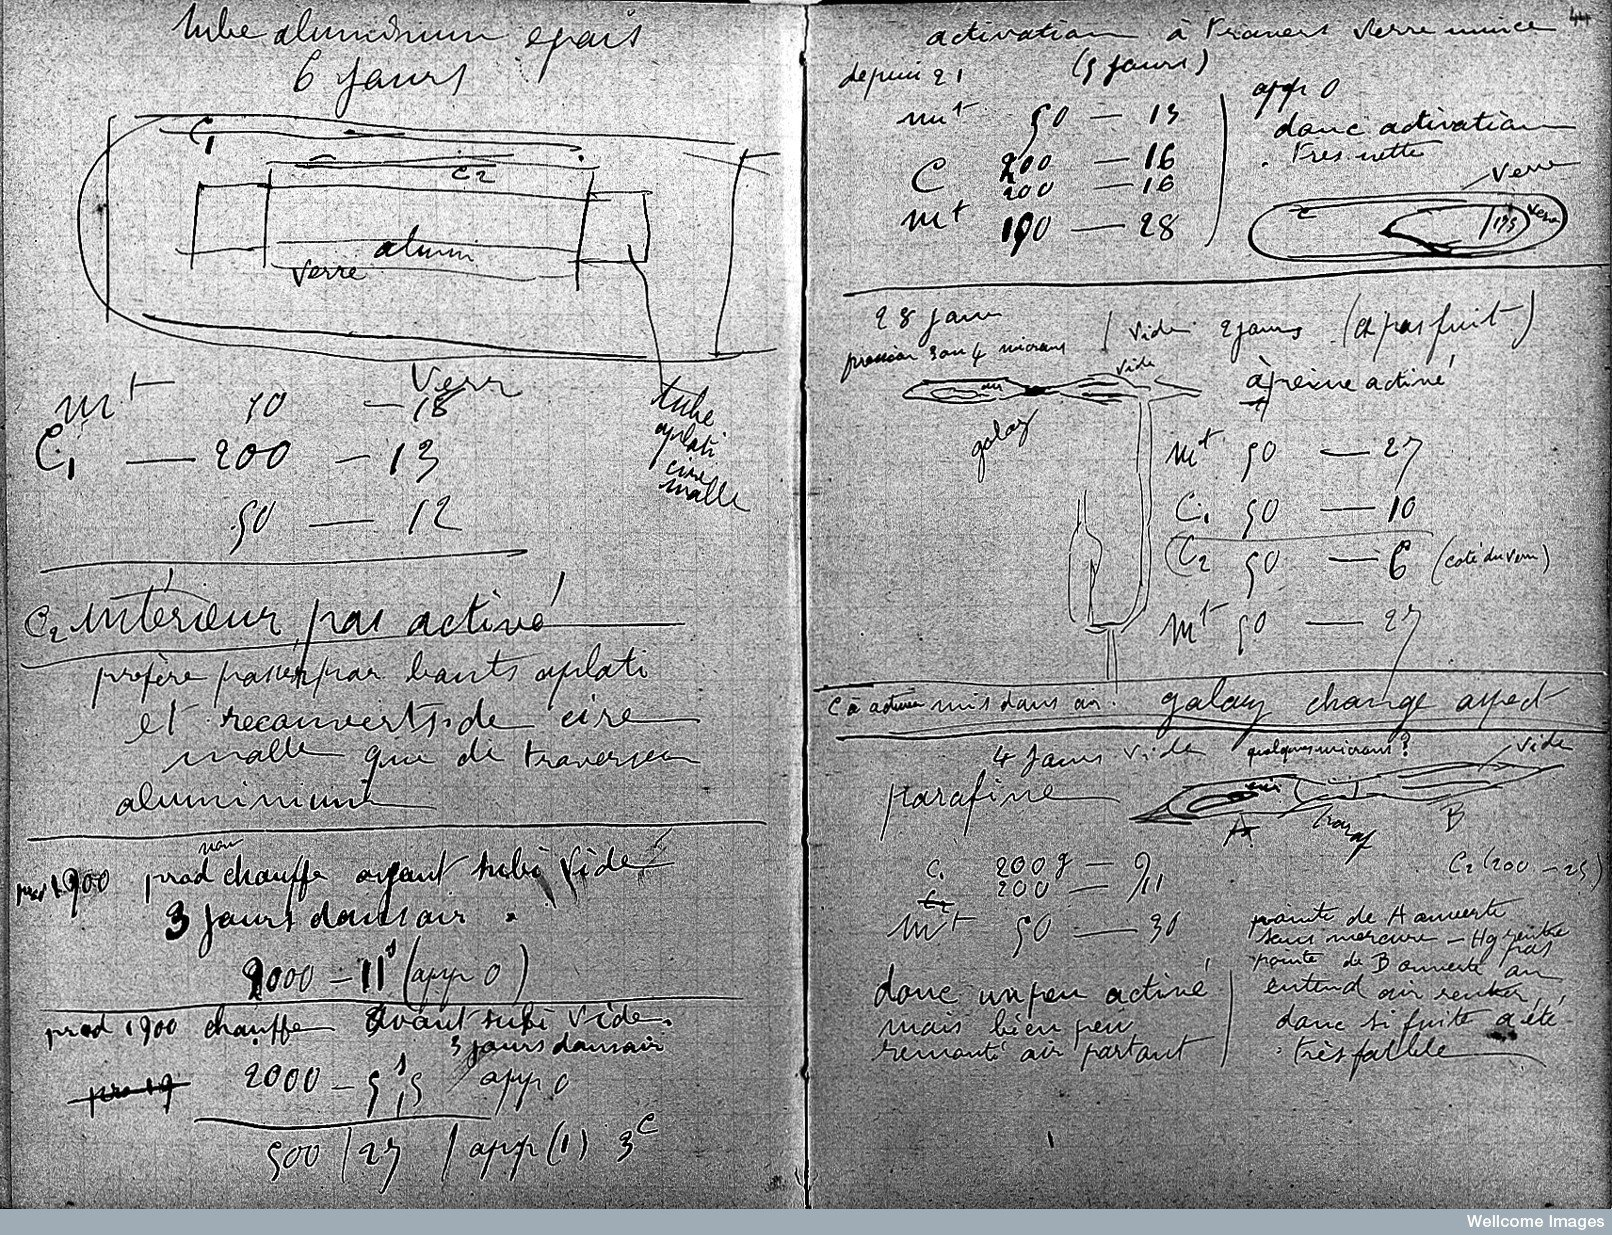 Marie Curie's Research Papers